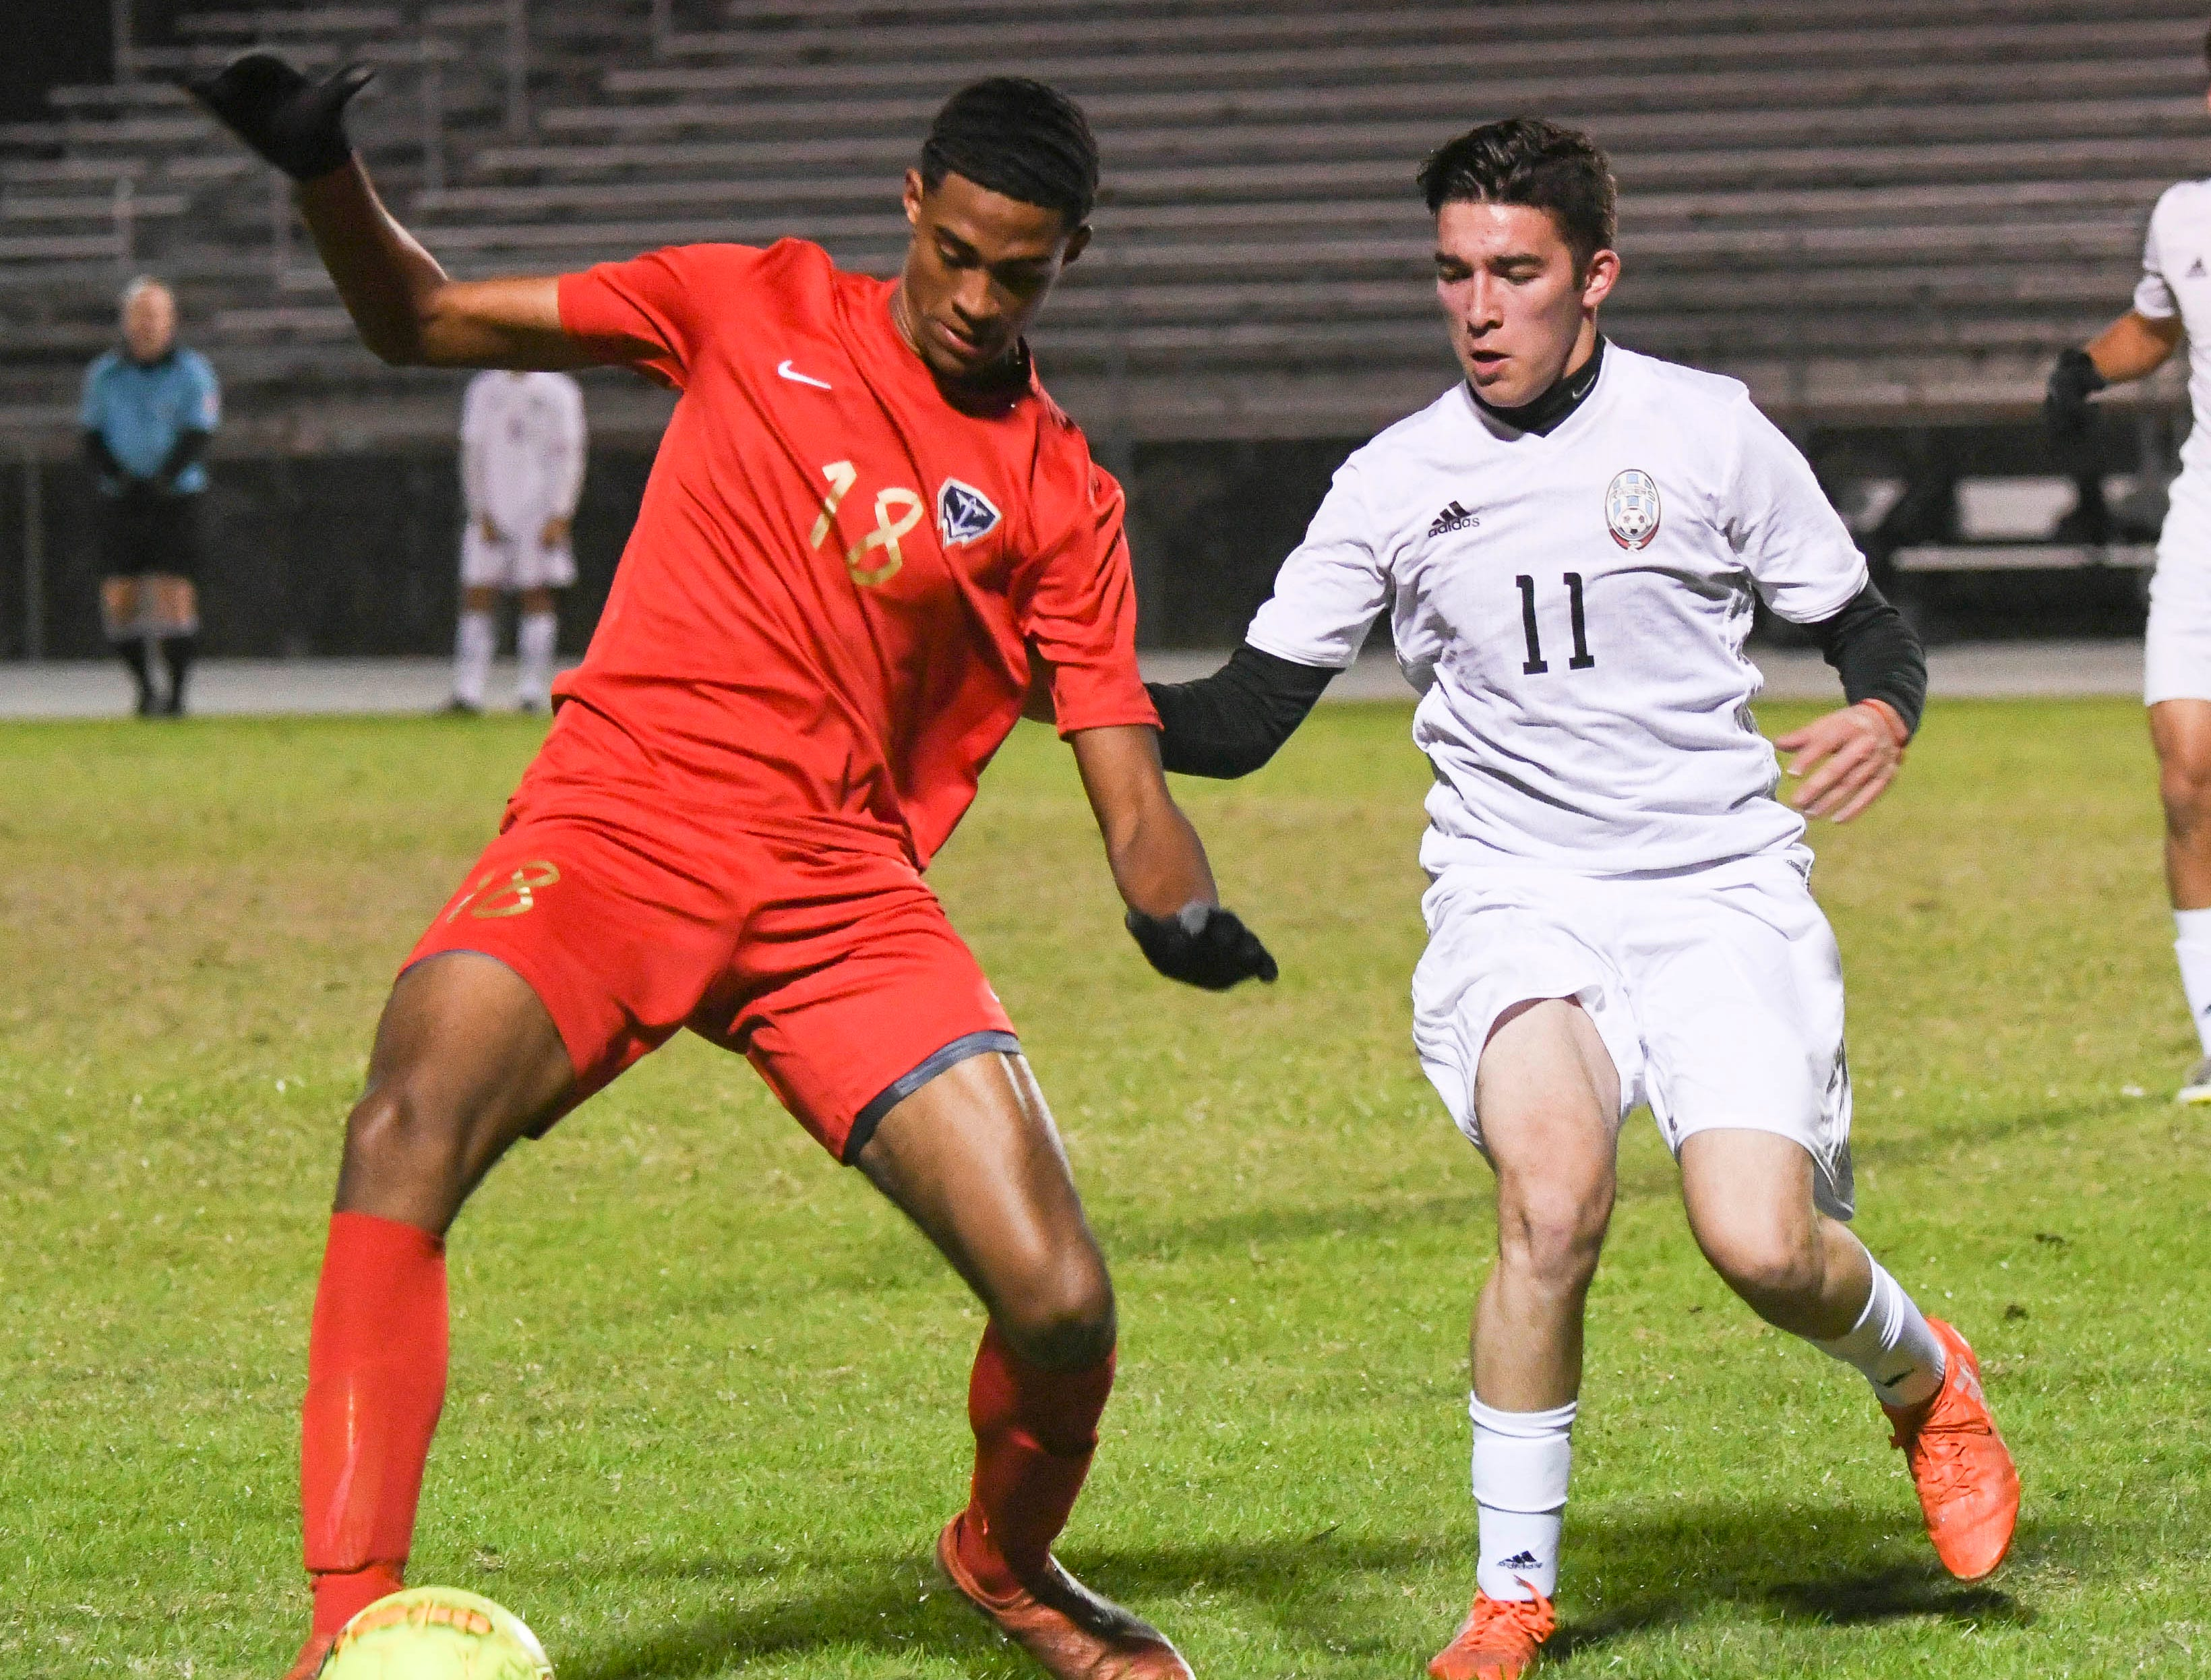 Eau Gallie's Bruce Smith tries to keep the ball away from Beto Garza of Rockledge during Thursday's game in Melbourne.